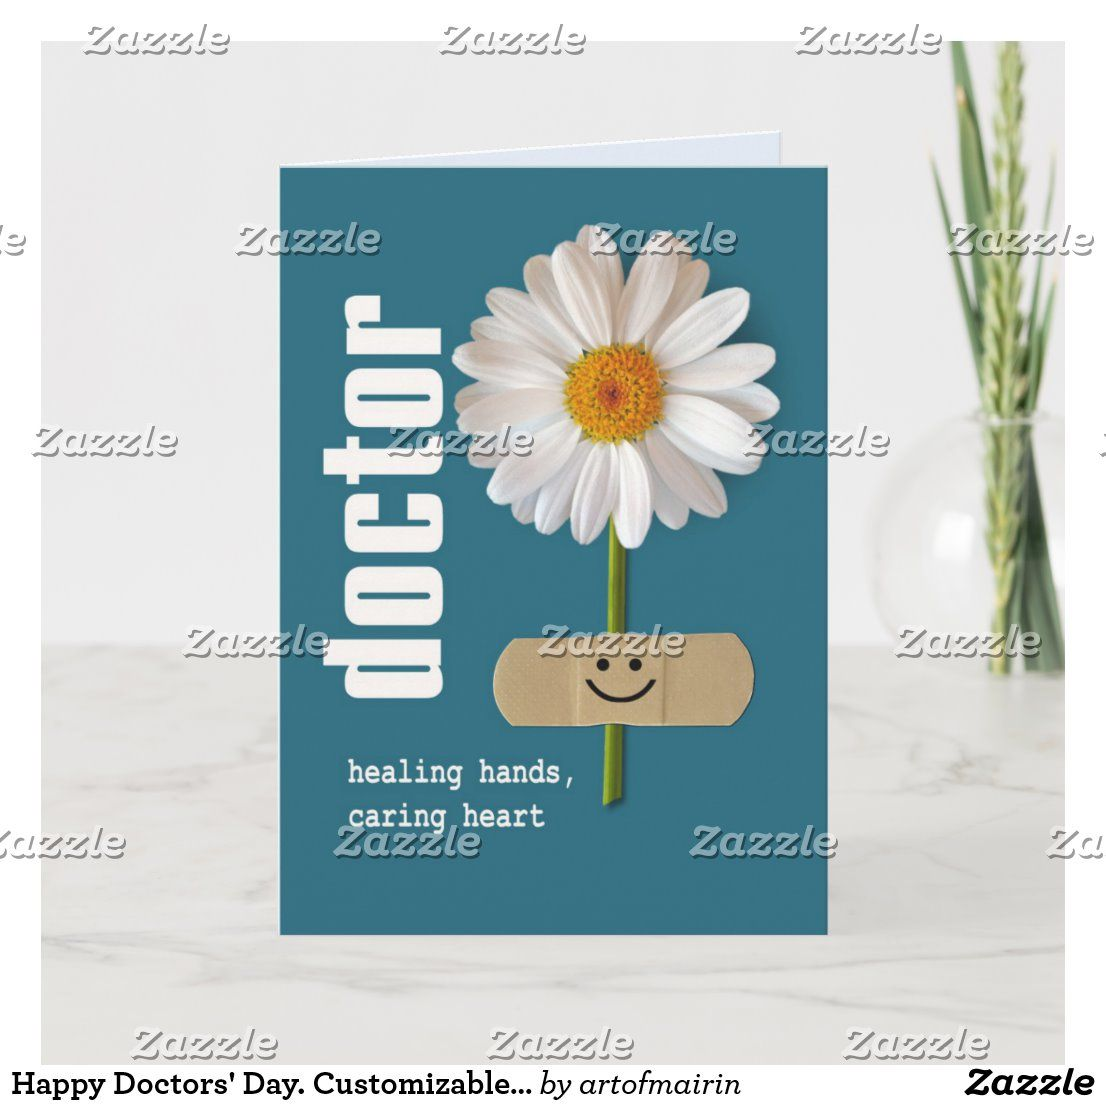 Happy Doctors' Day. Customizable Greeting Cards | Zazzle.com